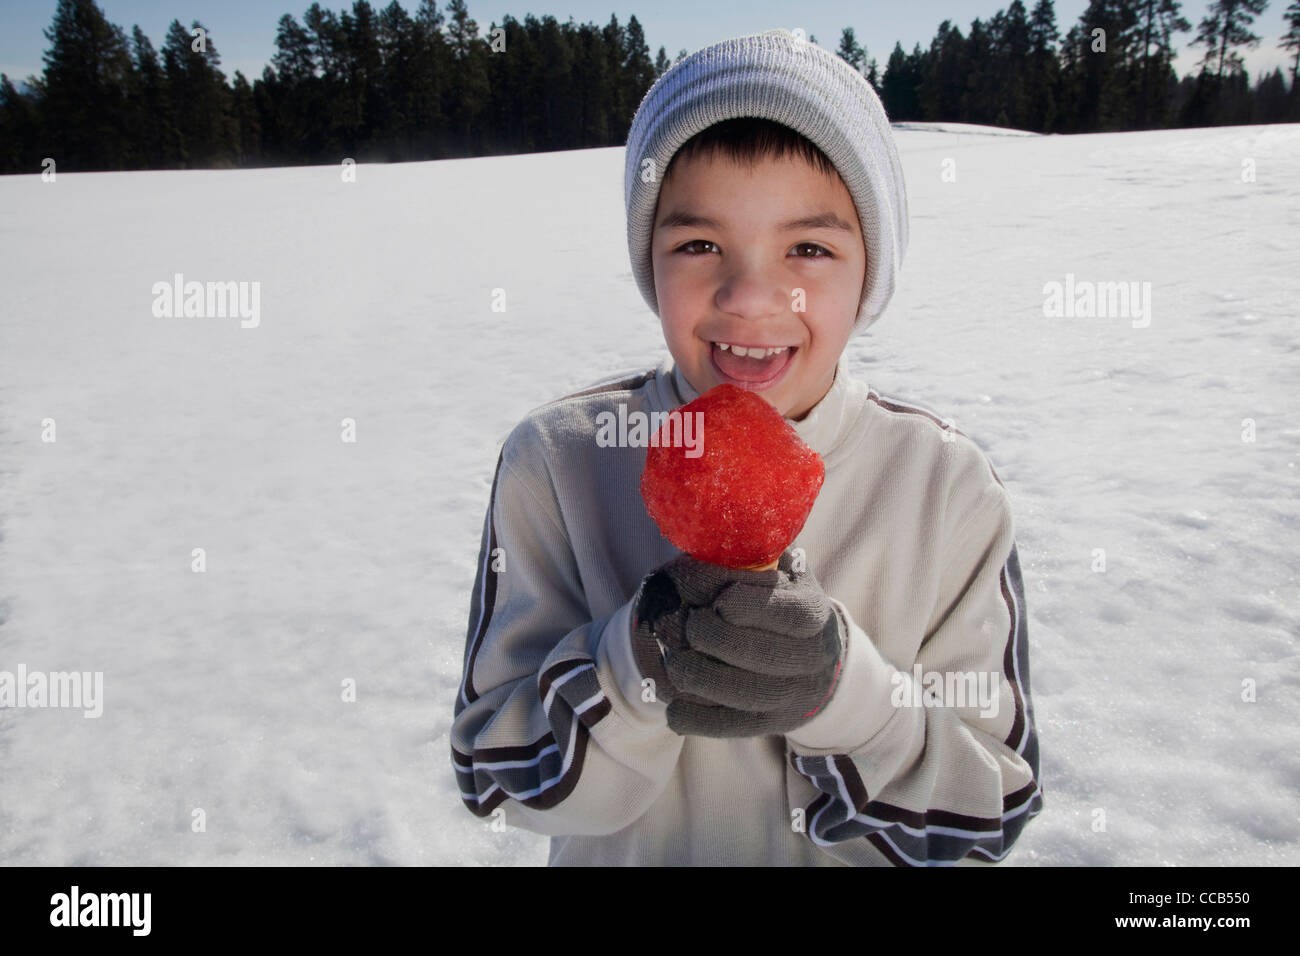 Boy 10 -12 yrs. old eating a snow cone outdoors on a winter day. - Stock Image